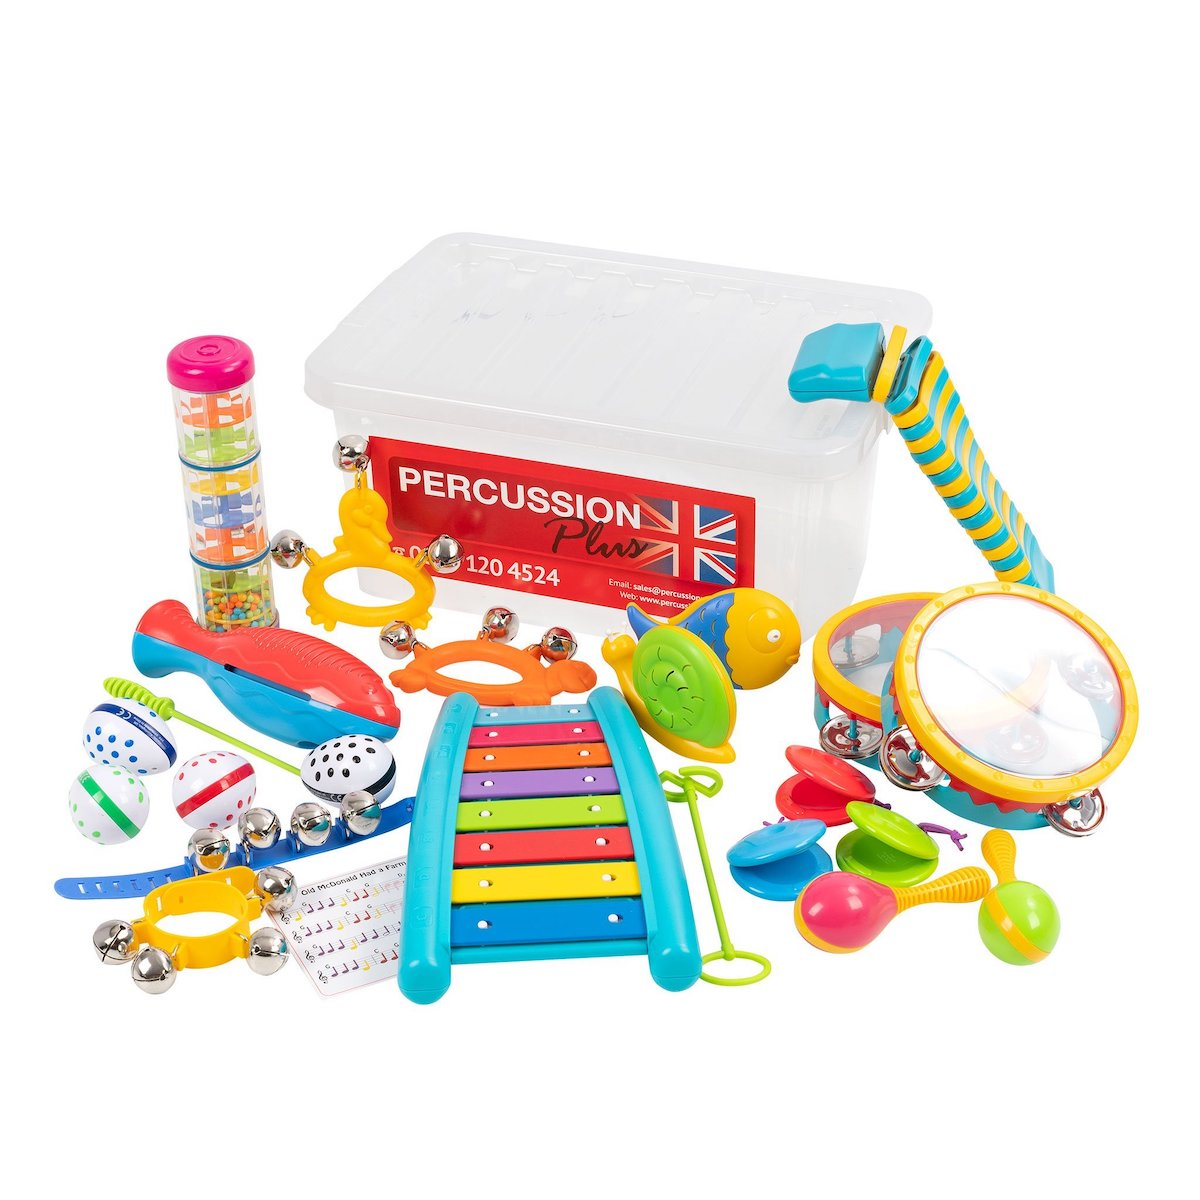 Percussion Plus Small Hands Classroom Pack